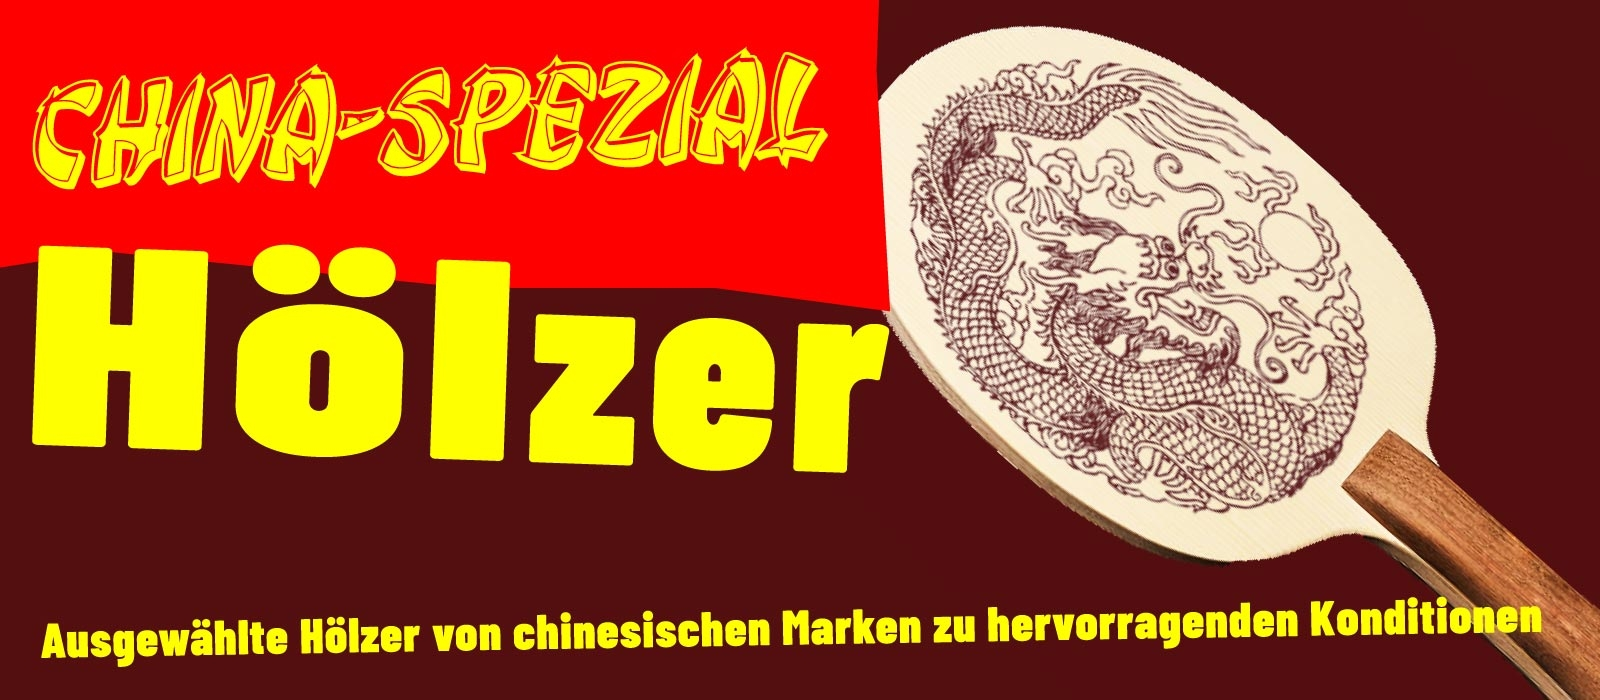 China-Spezial Hölzer - All - Off - All+